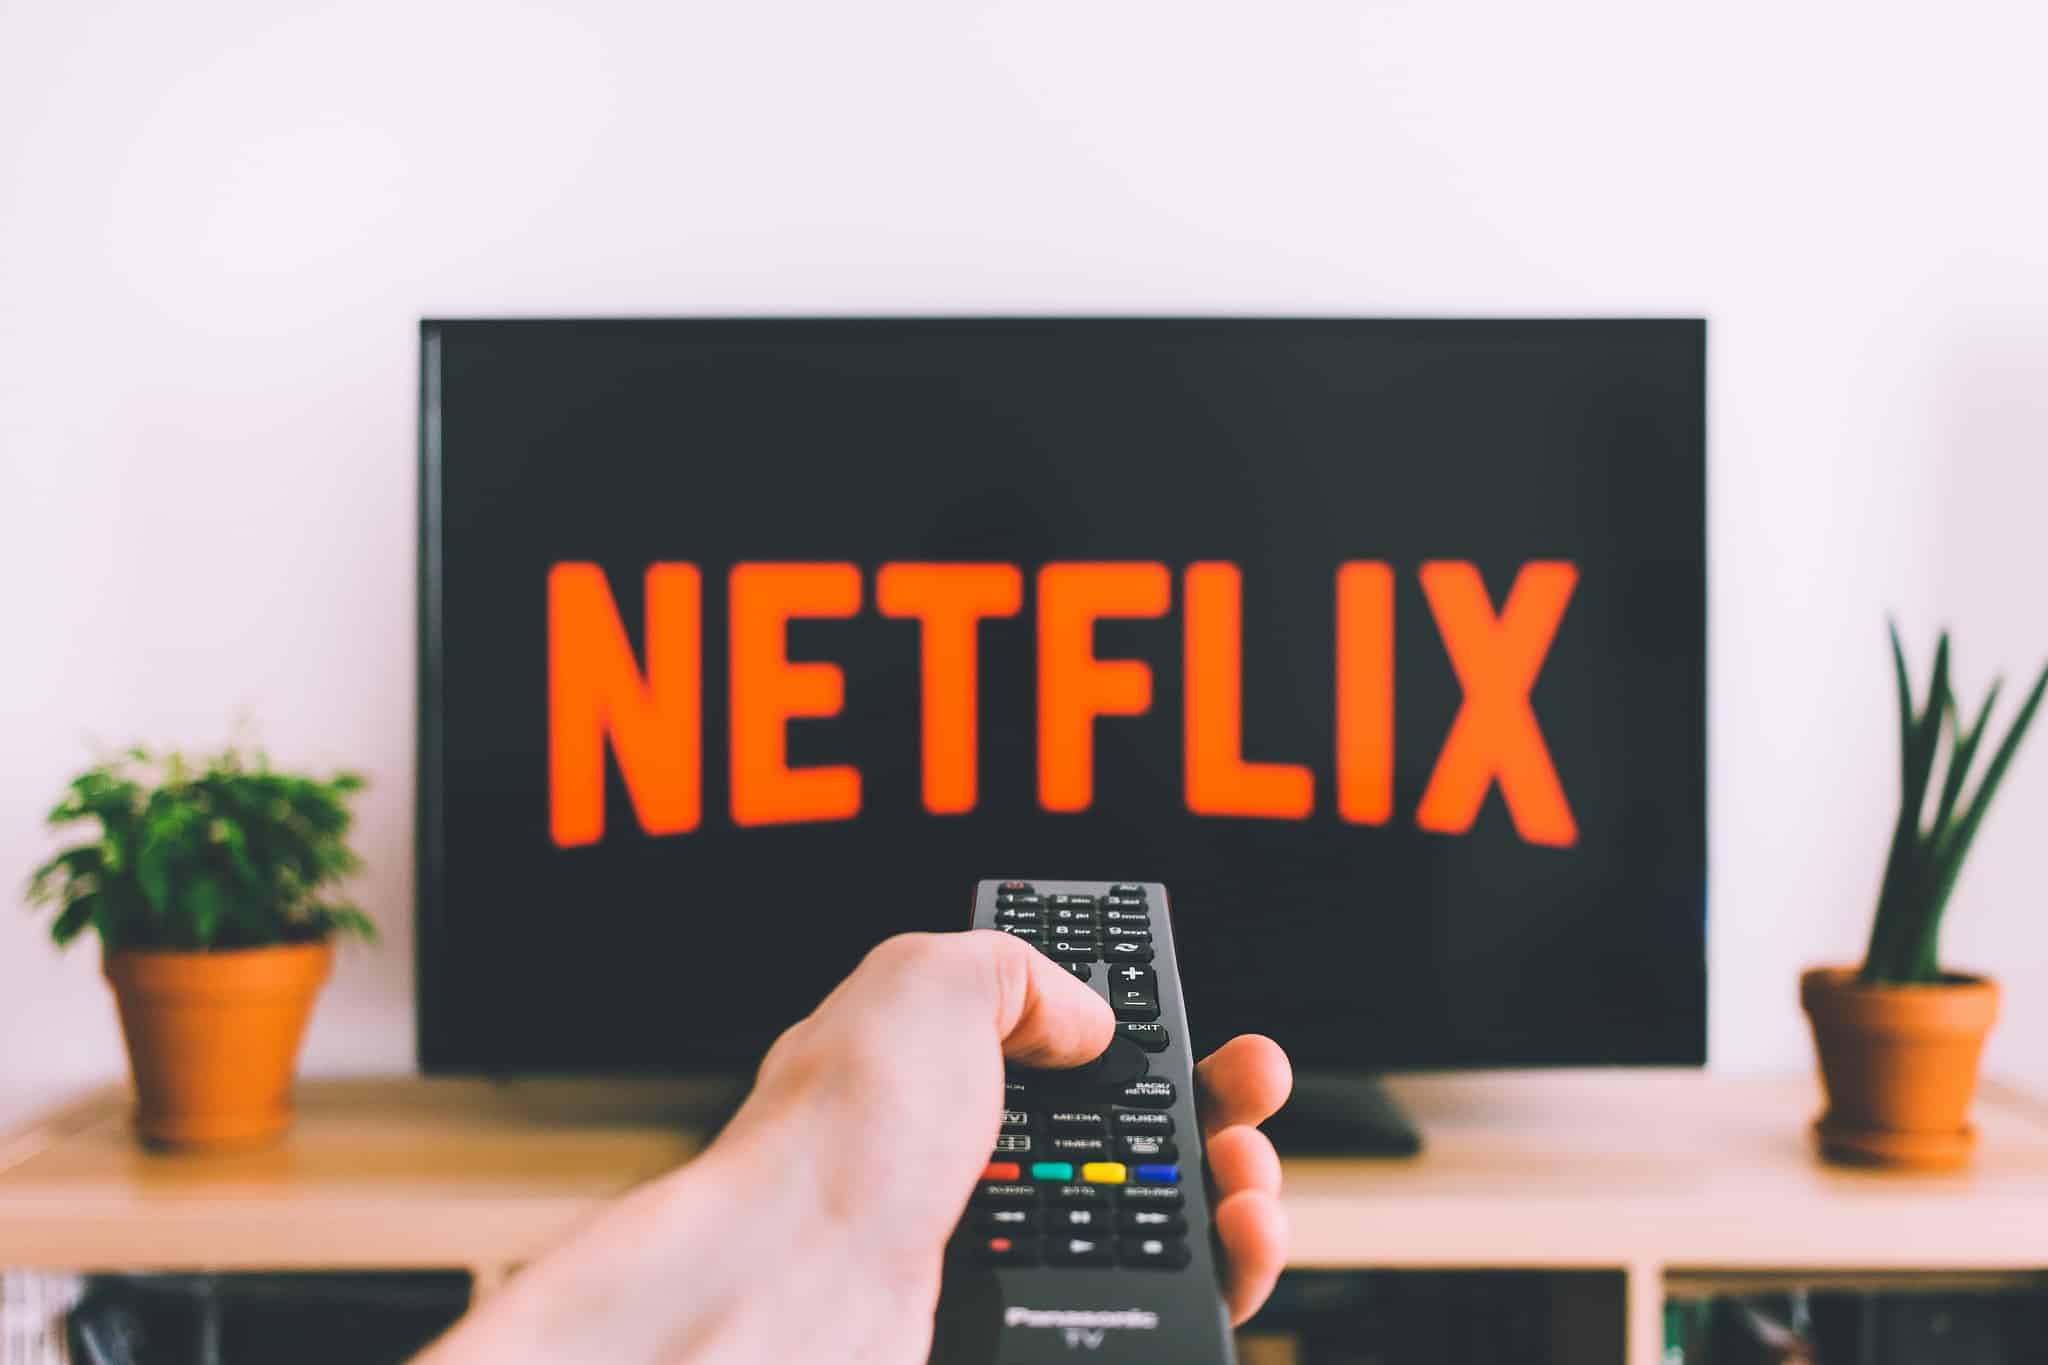 How to unblock Netflix with ExpressVPN